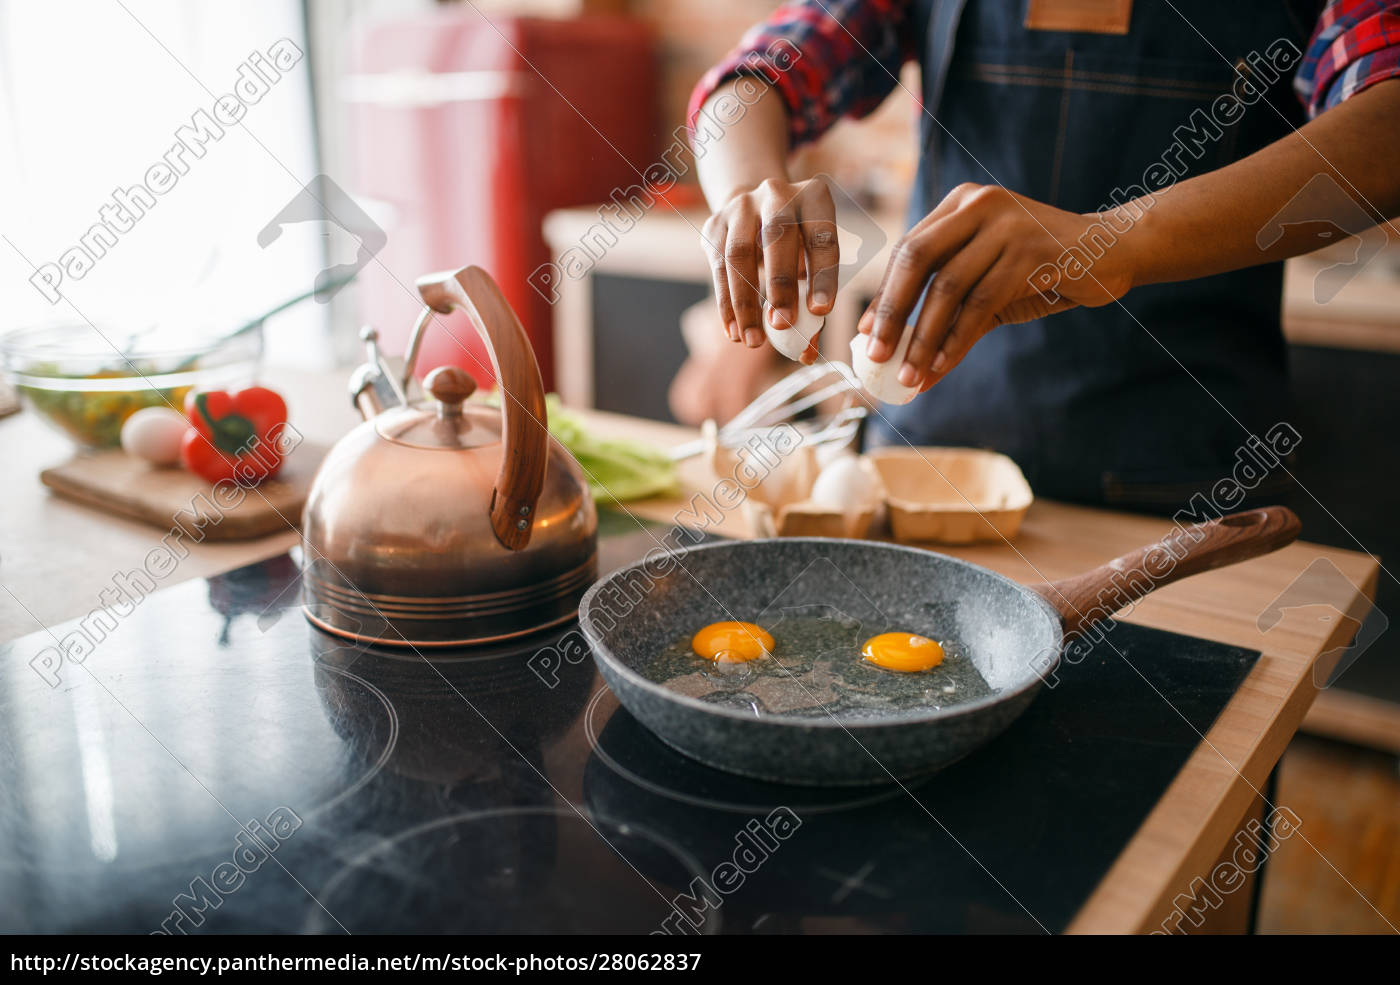 black, female, person, cooking, fried, eggs - 28062837